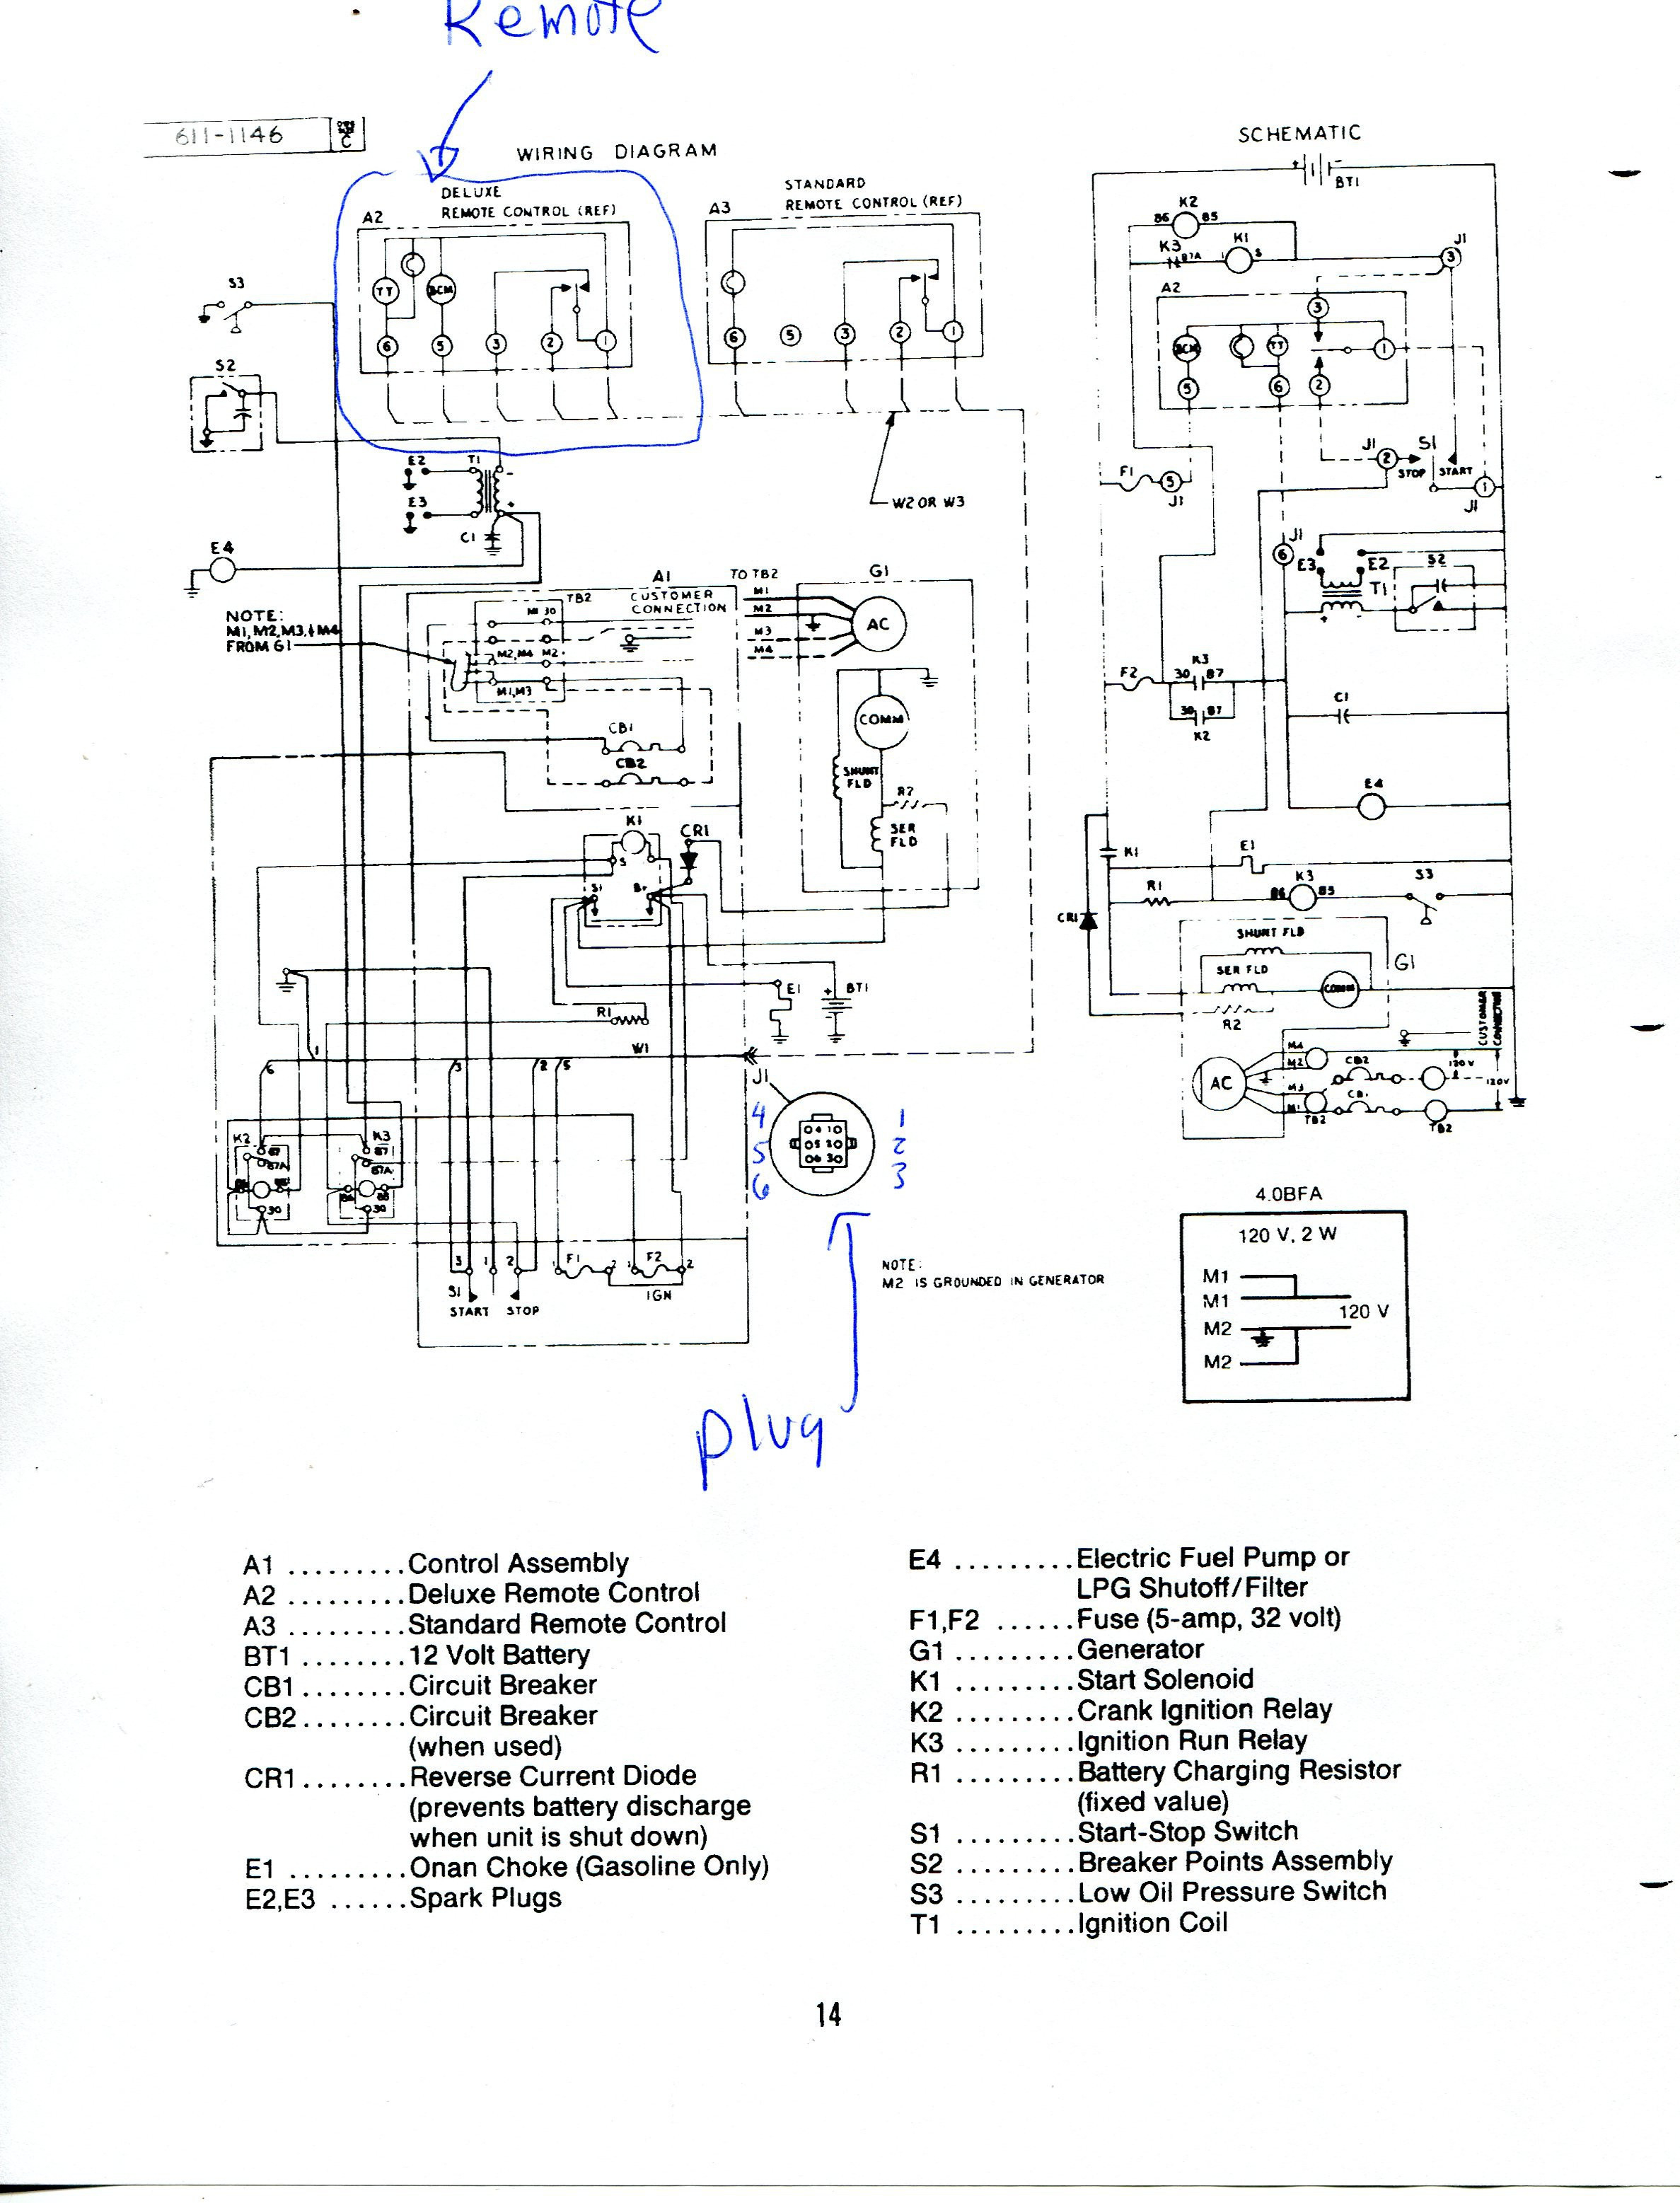 onan 4000 generator remote start switch wiring diagram Collection-generator remote switch wiring diagram moreover onan generator rh mitzuradio me 11-c